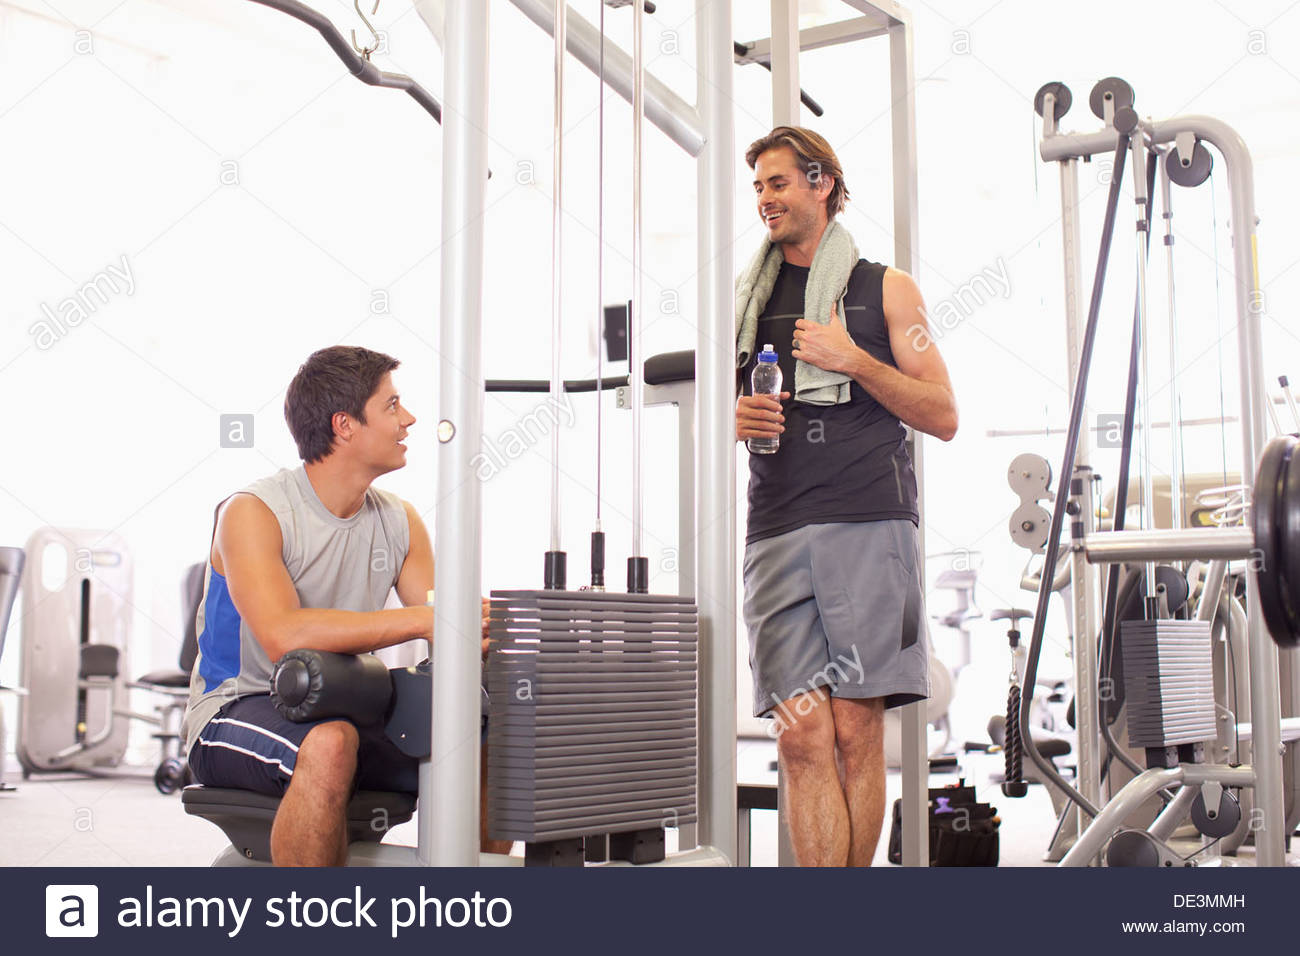 Portrait of smiling men working out in gymnasium - Stock Image